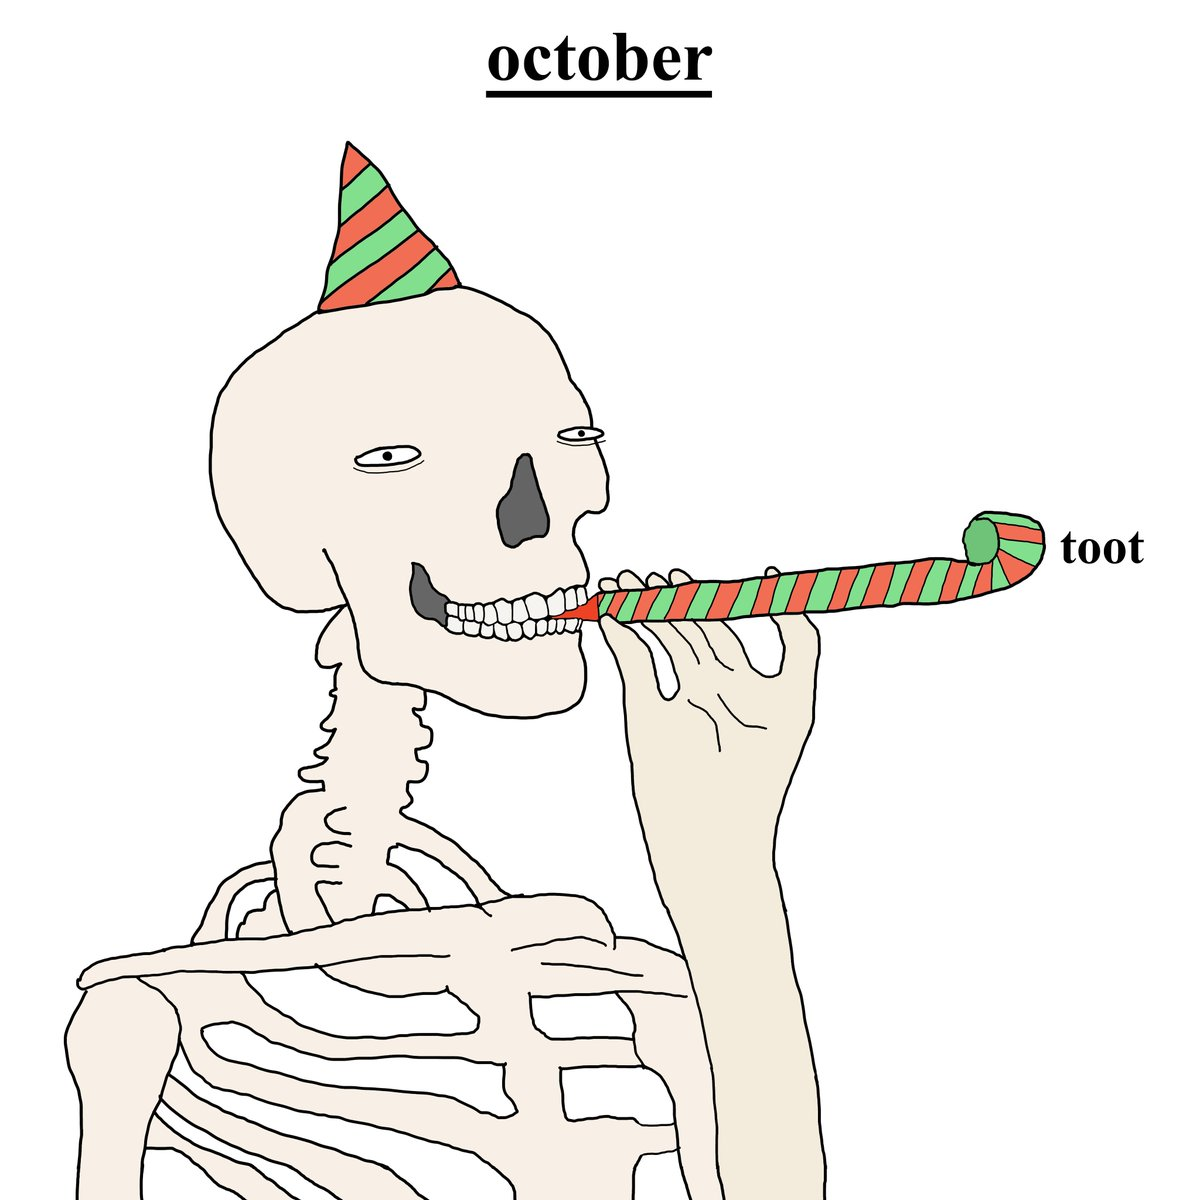 lets get spooky xox https://t.co/OWqUxlXKek